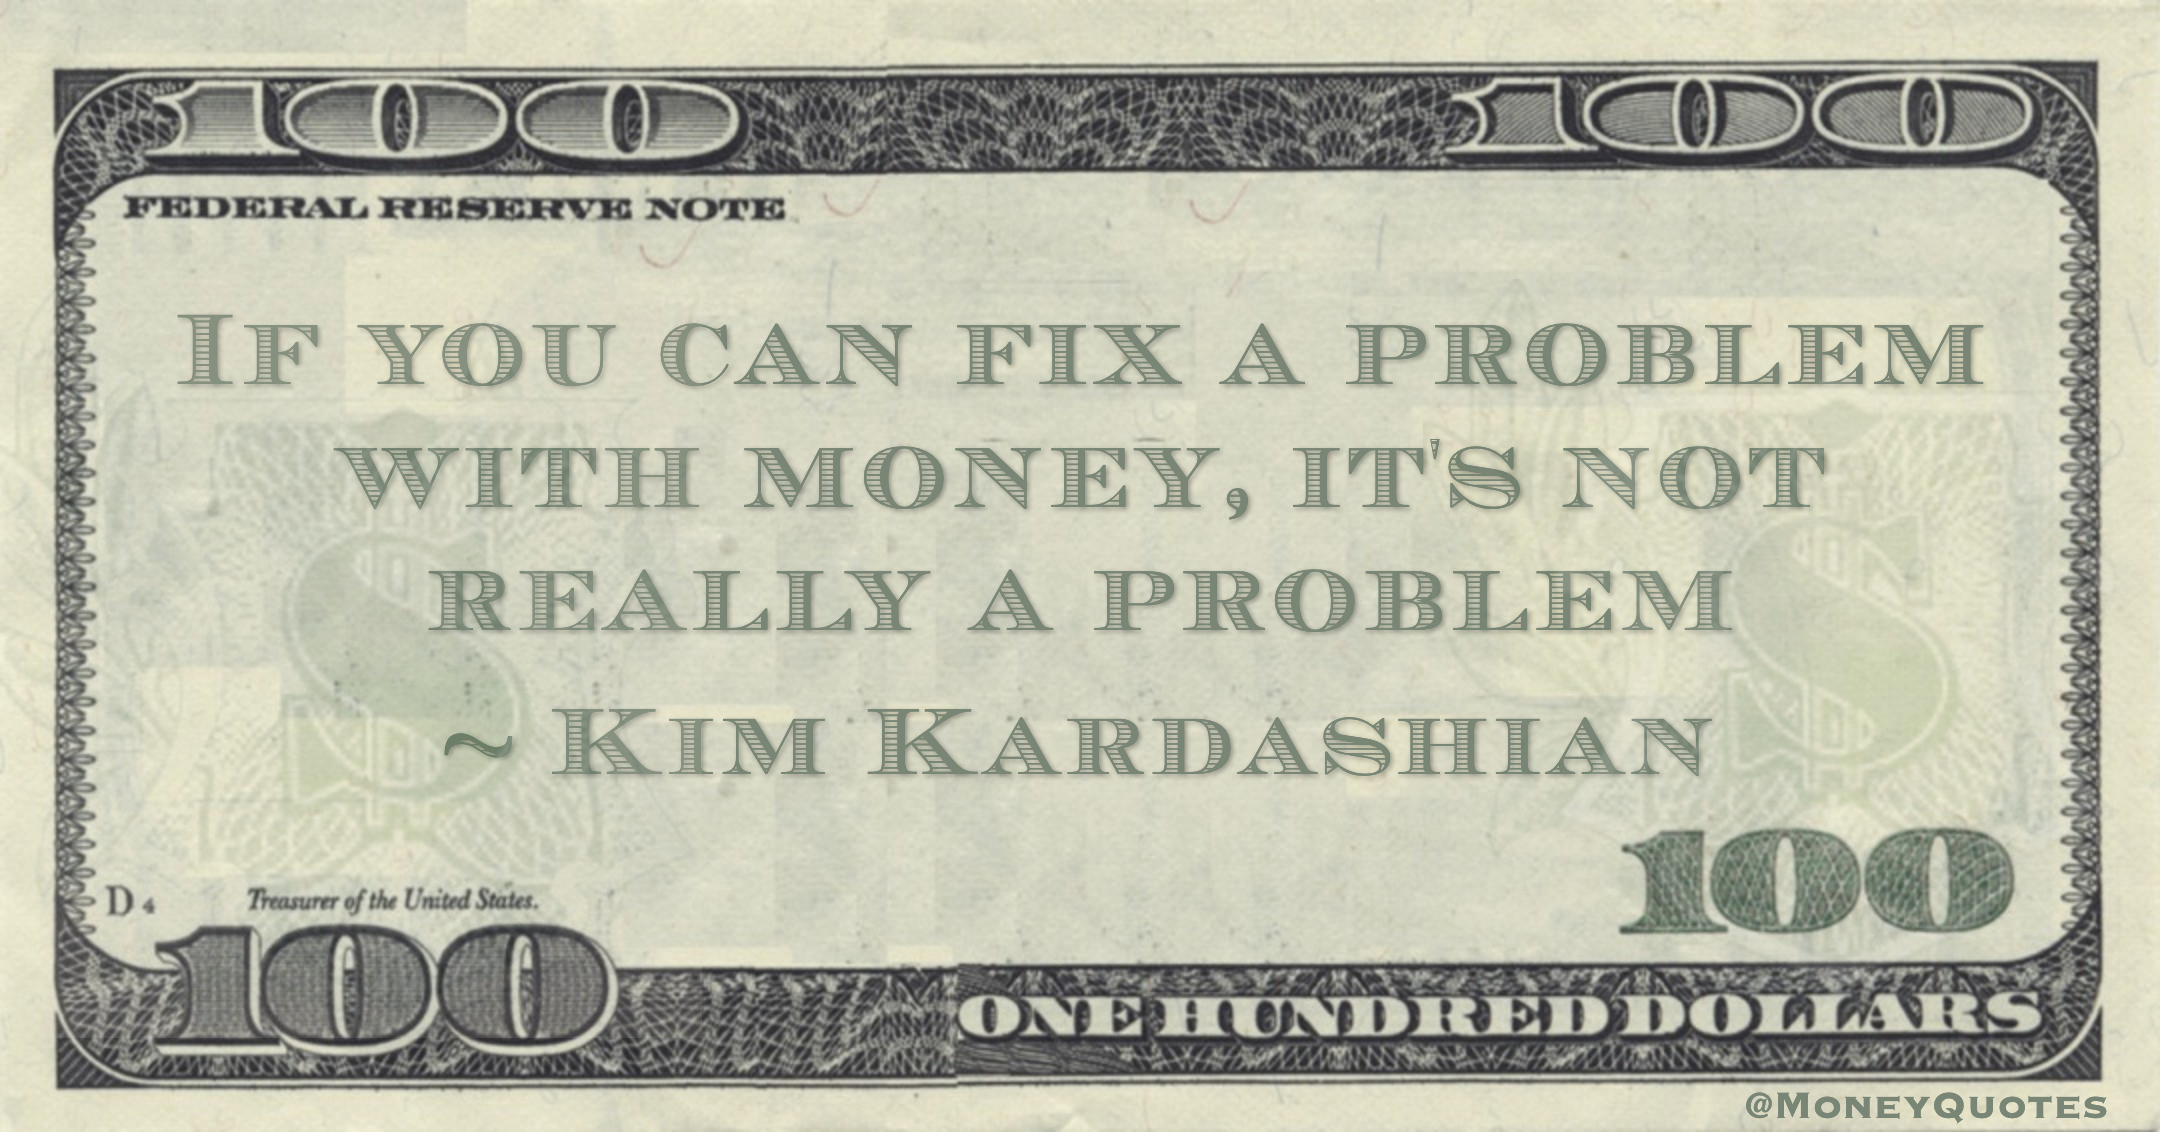 If you can fix a problem with money, it's not really a problem Quote